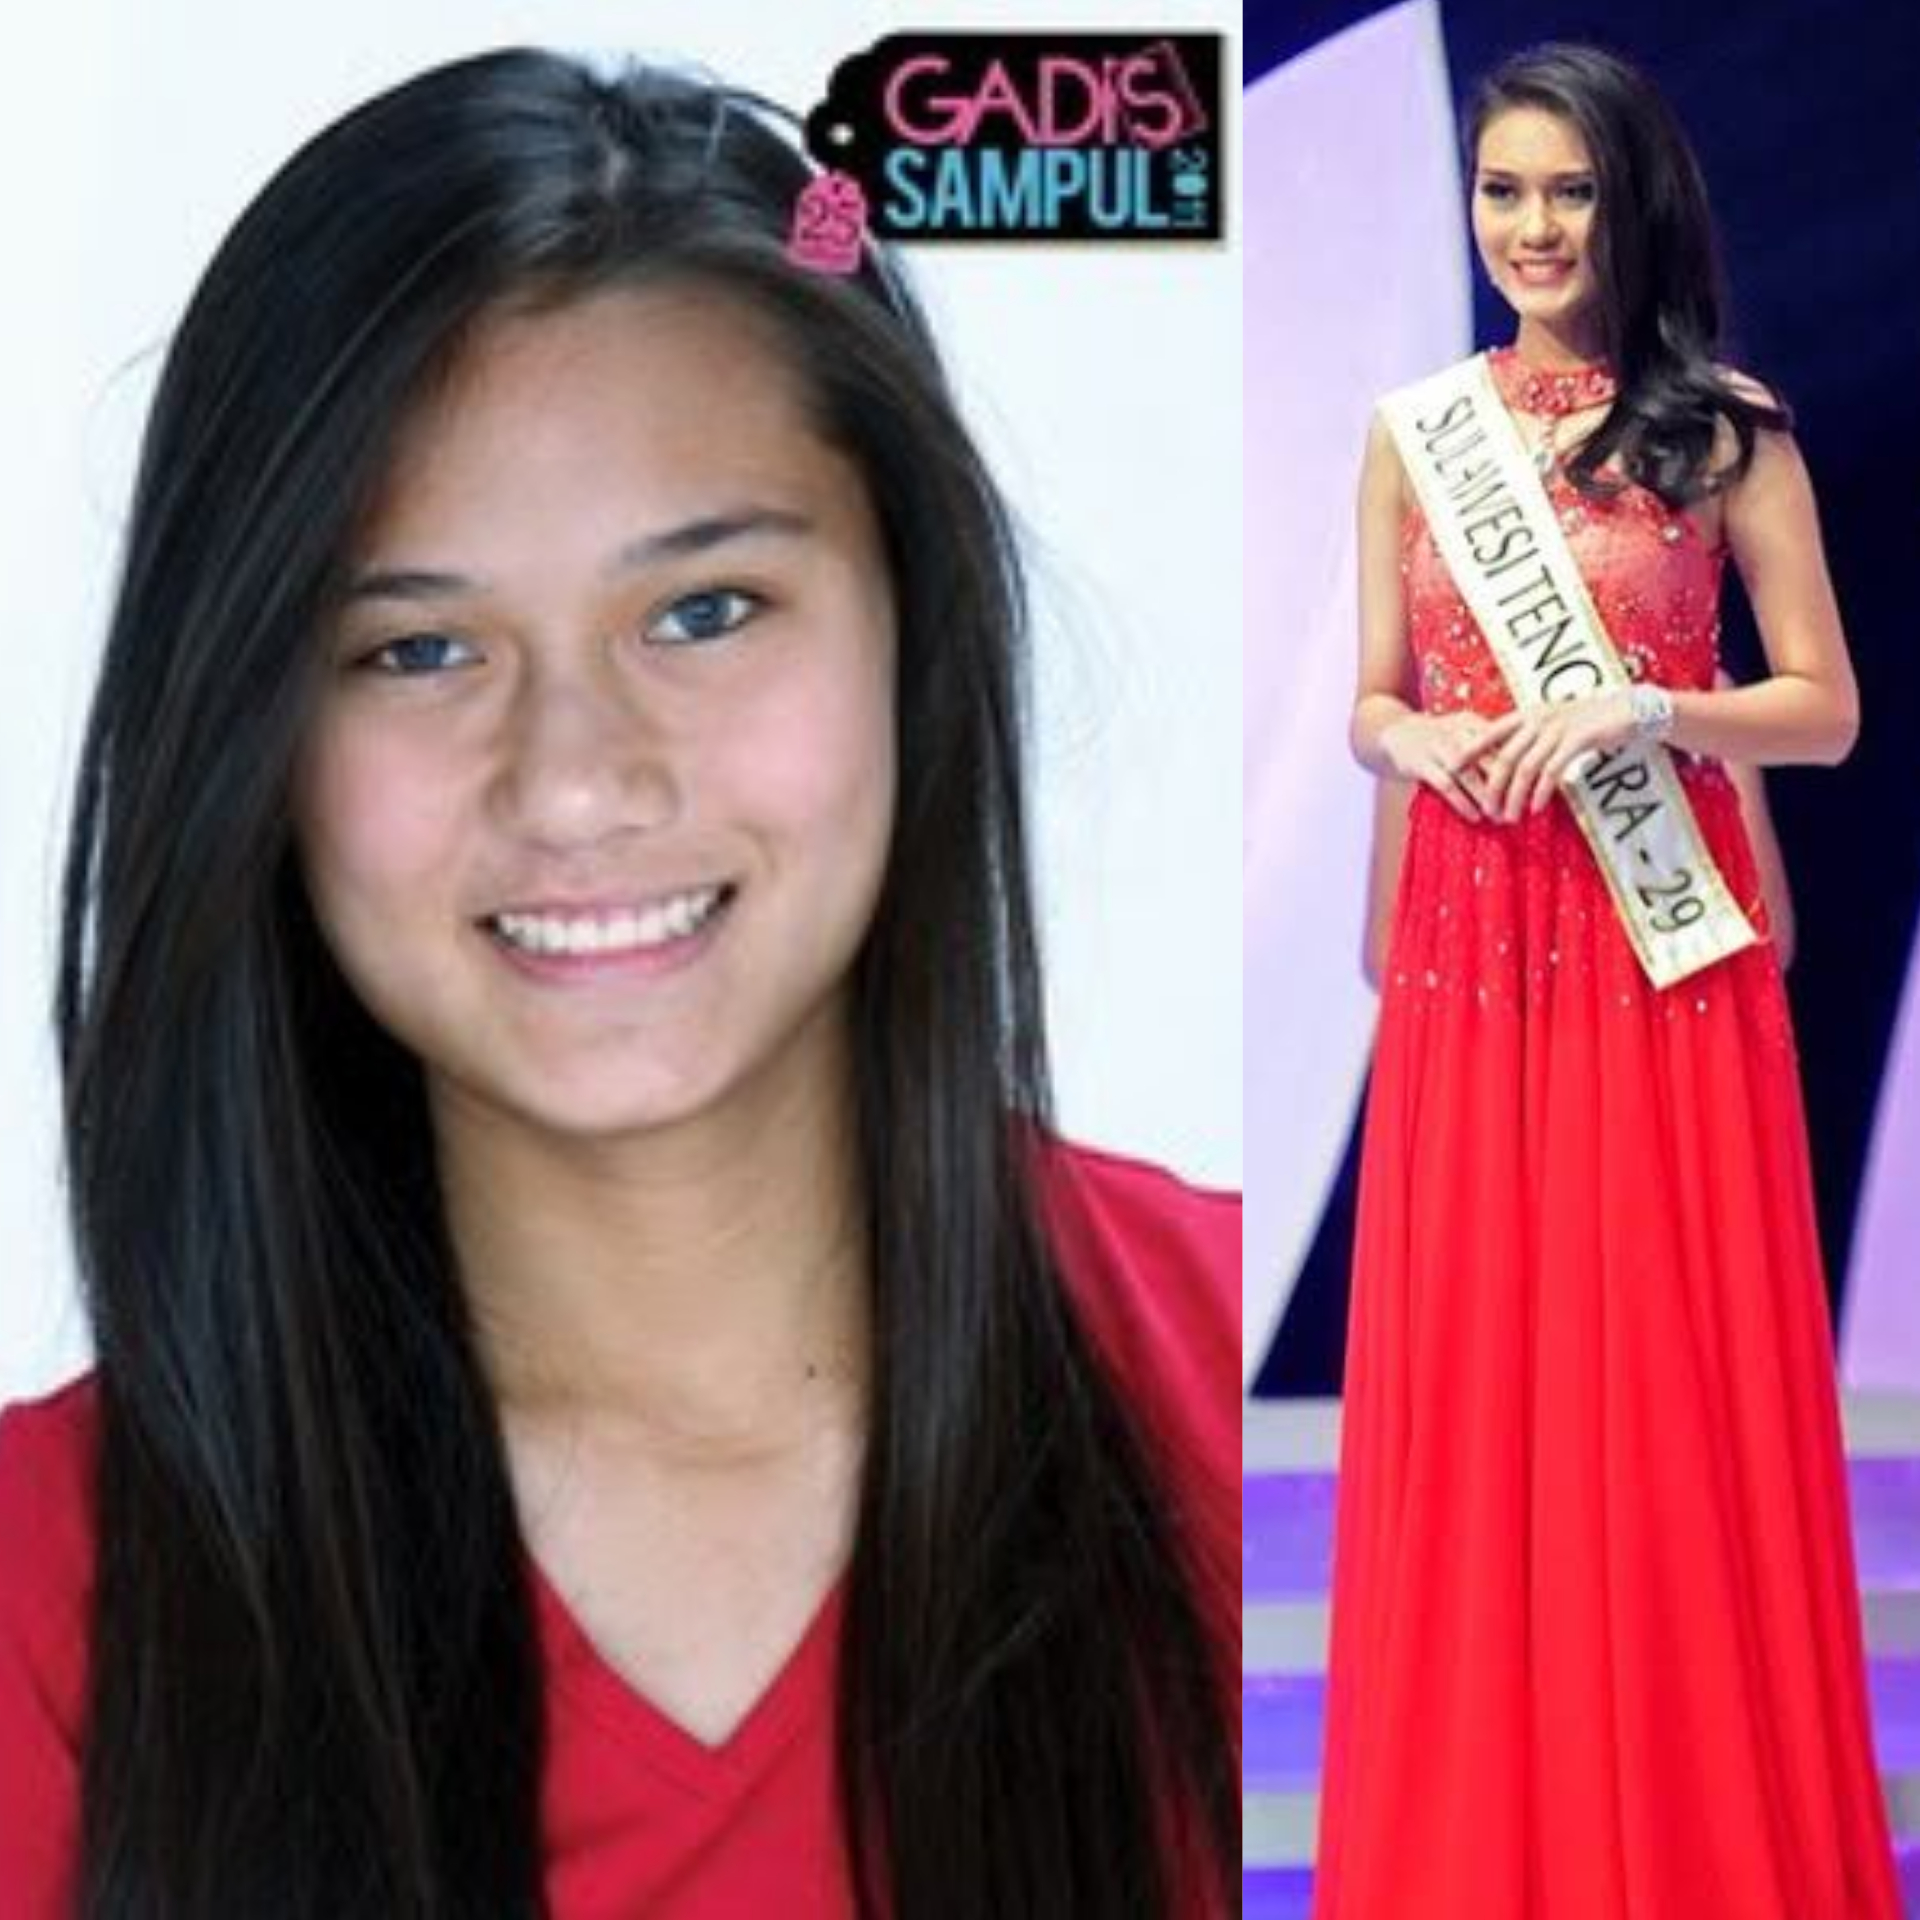 Claudia-Marcia-1st-runner-up-Gadis-Sampul-2011-Miss-Indonesia-Sulawesi-Tenggara-2013-Top-5-Miss-Indonesia-2013